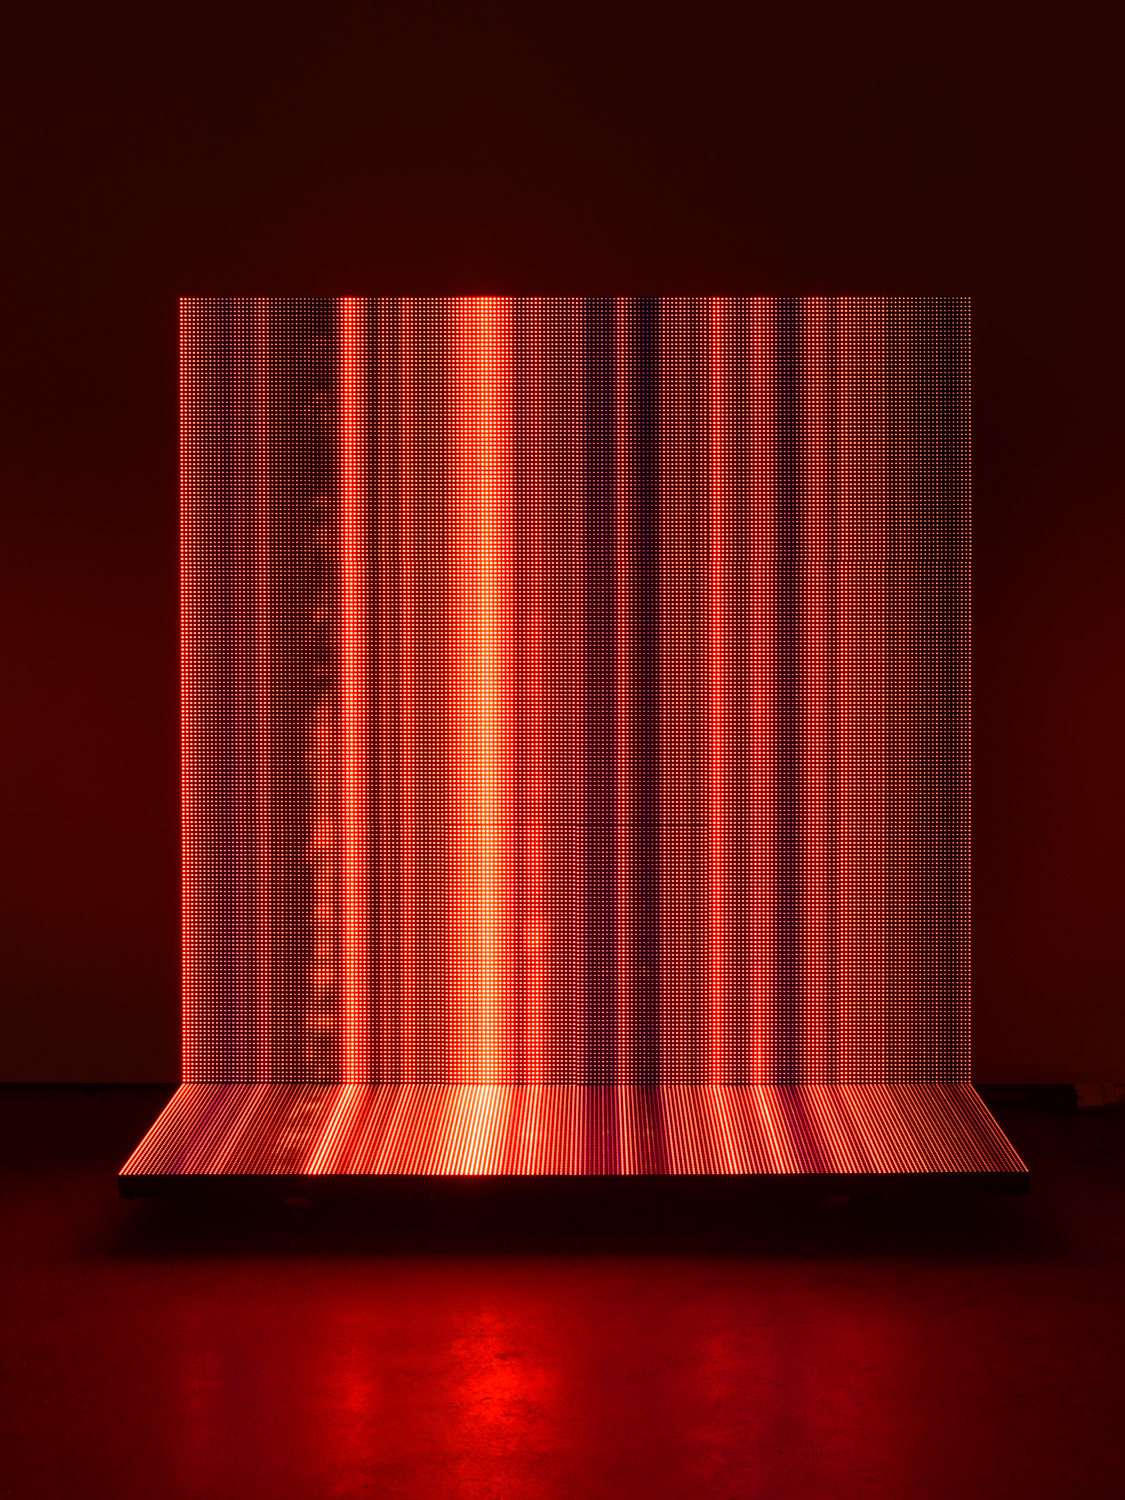 LukeMurphy  FirePlace  2019 P4 LED Matrix Panels, animation code, mini-PC running Linux, power supplies, aluminum, wire or MDF armature. Technical: Python3 scripts and software, Gigabyte brand i3 mini-PC, running Lubuntu Linux, Linsn receiver card, sender card, 5v 40A 125/220v AC power supplies 32 1/2h x 30 1/4w x 15d in LMurph003